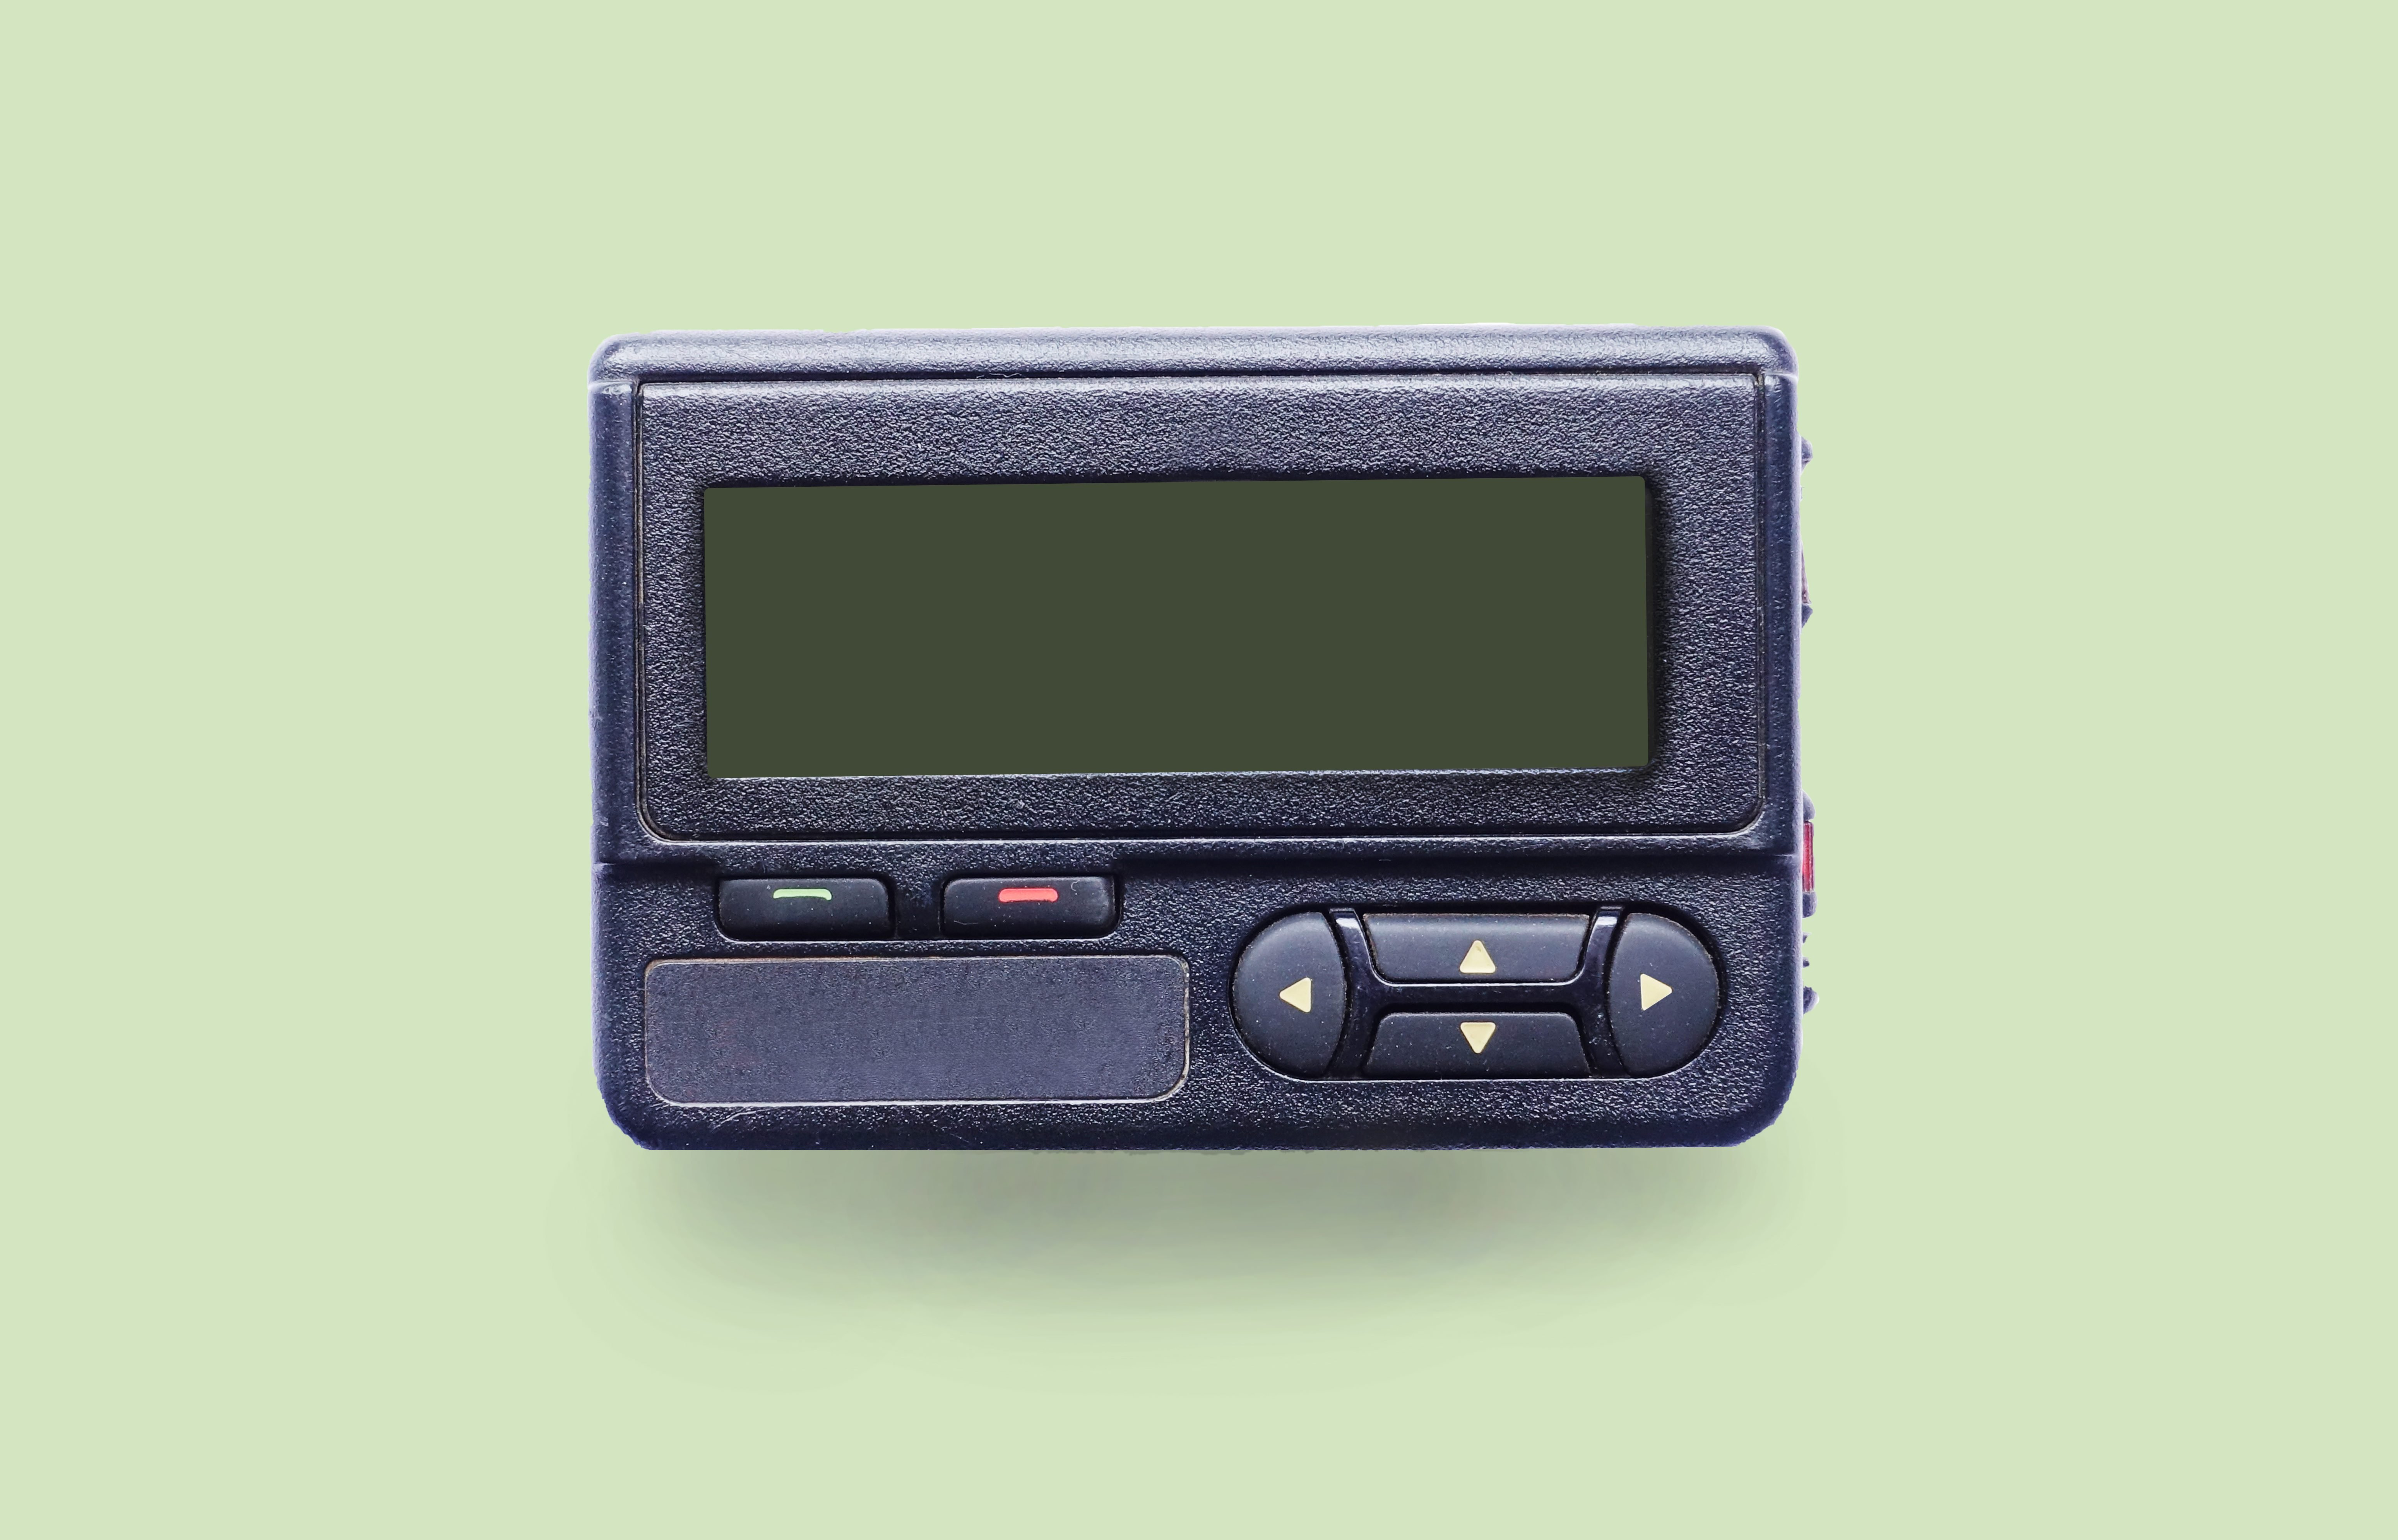 Old beeper or pager isolated on white background; Shutterstock ID 697663945; Job (TFH, TOH, RD, BNB, CWM, CM): -